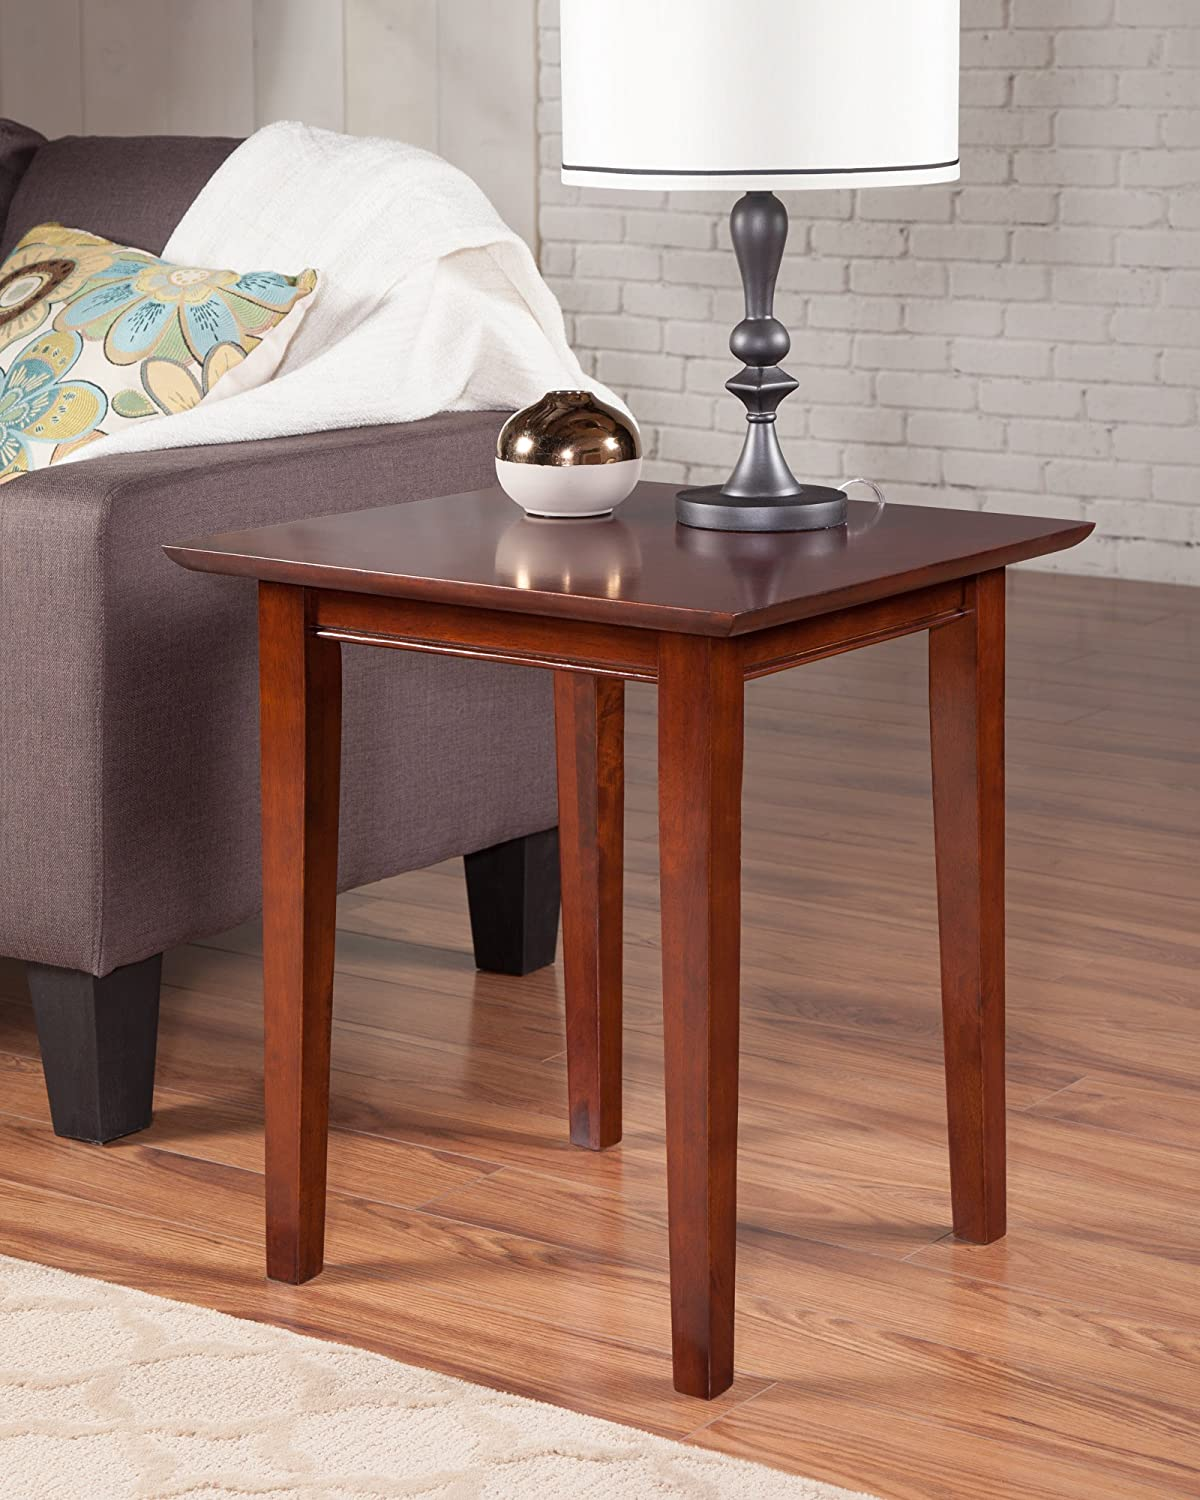 Amazon com atlantic furniture ah14104 shaker end table rubberwood walnut kitchen dining